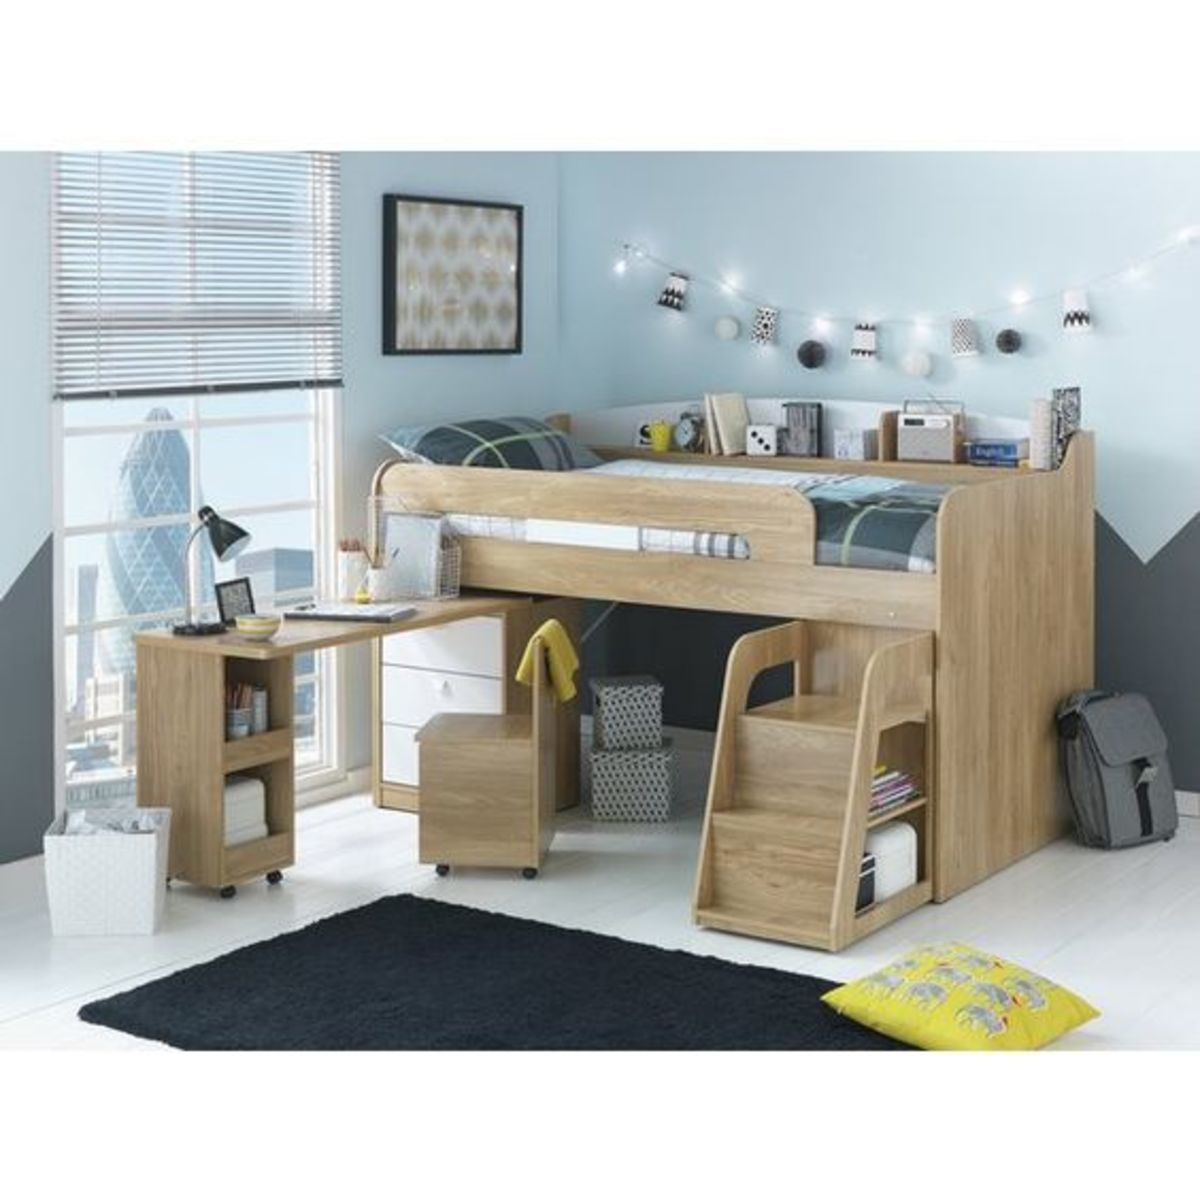 6-amazing-murphy-bed-design-ideas-for-small-space-bedrooms